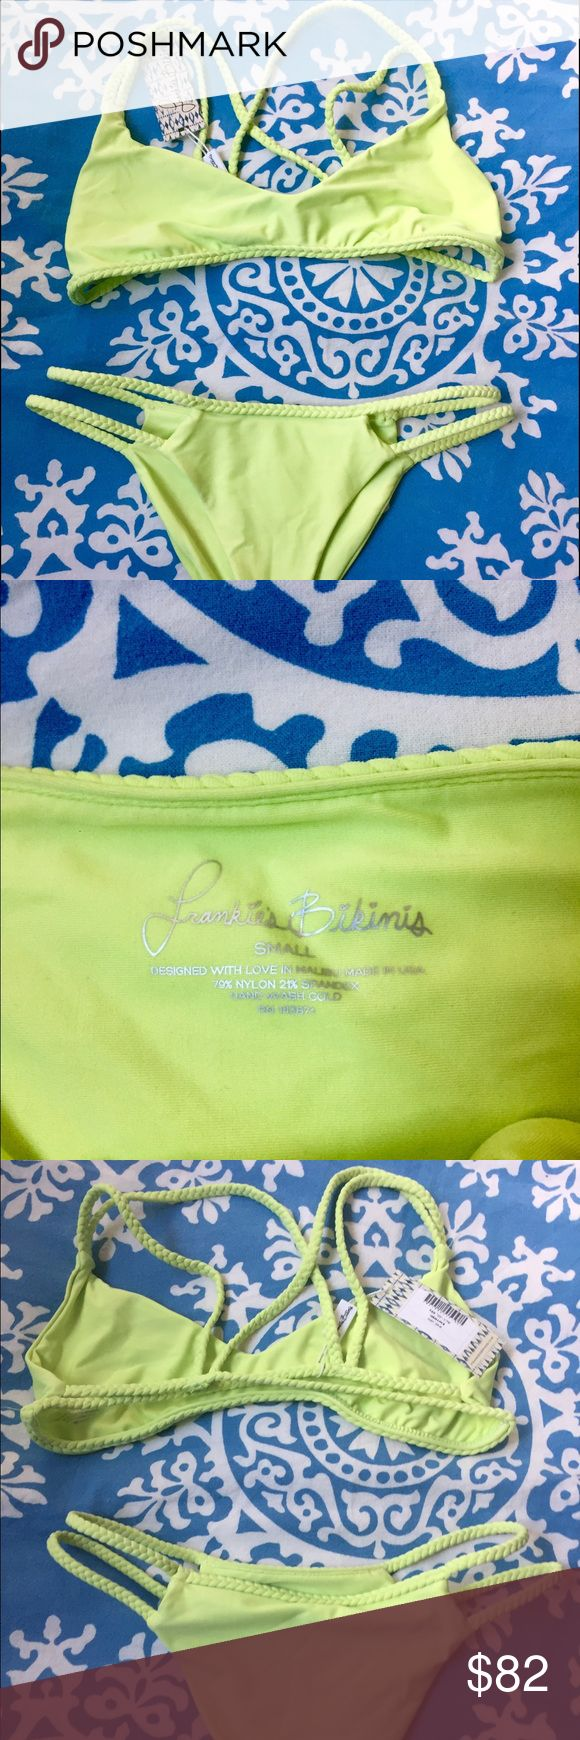 "Frankie's Bikinis ""Kaia"" Set in Lime NWT re-poshing because I already have a kini similar to this! Super bright and fun lime green color, flattering cut! Perfect for summer! No flaws! No trades please :) top & bottom both size Small Frankie's Bikinis Swim Bikinis"